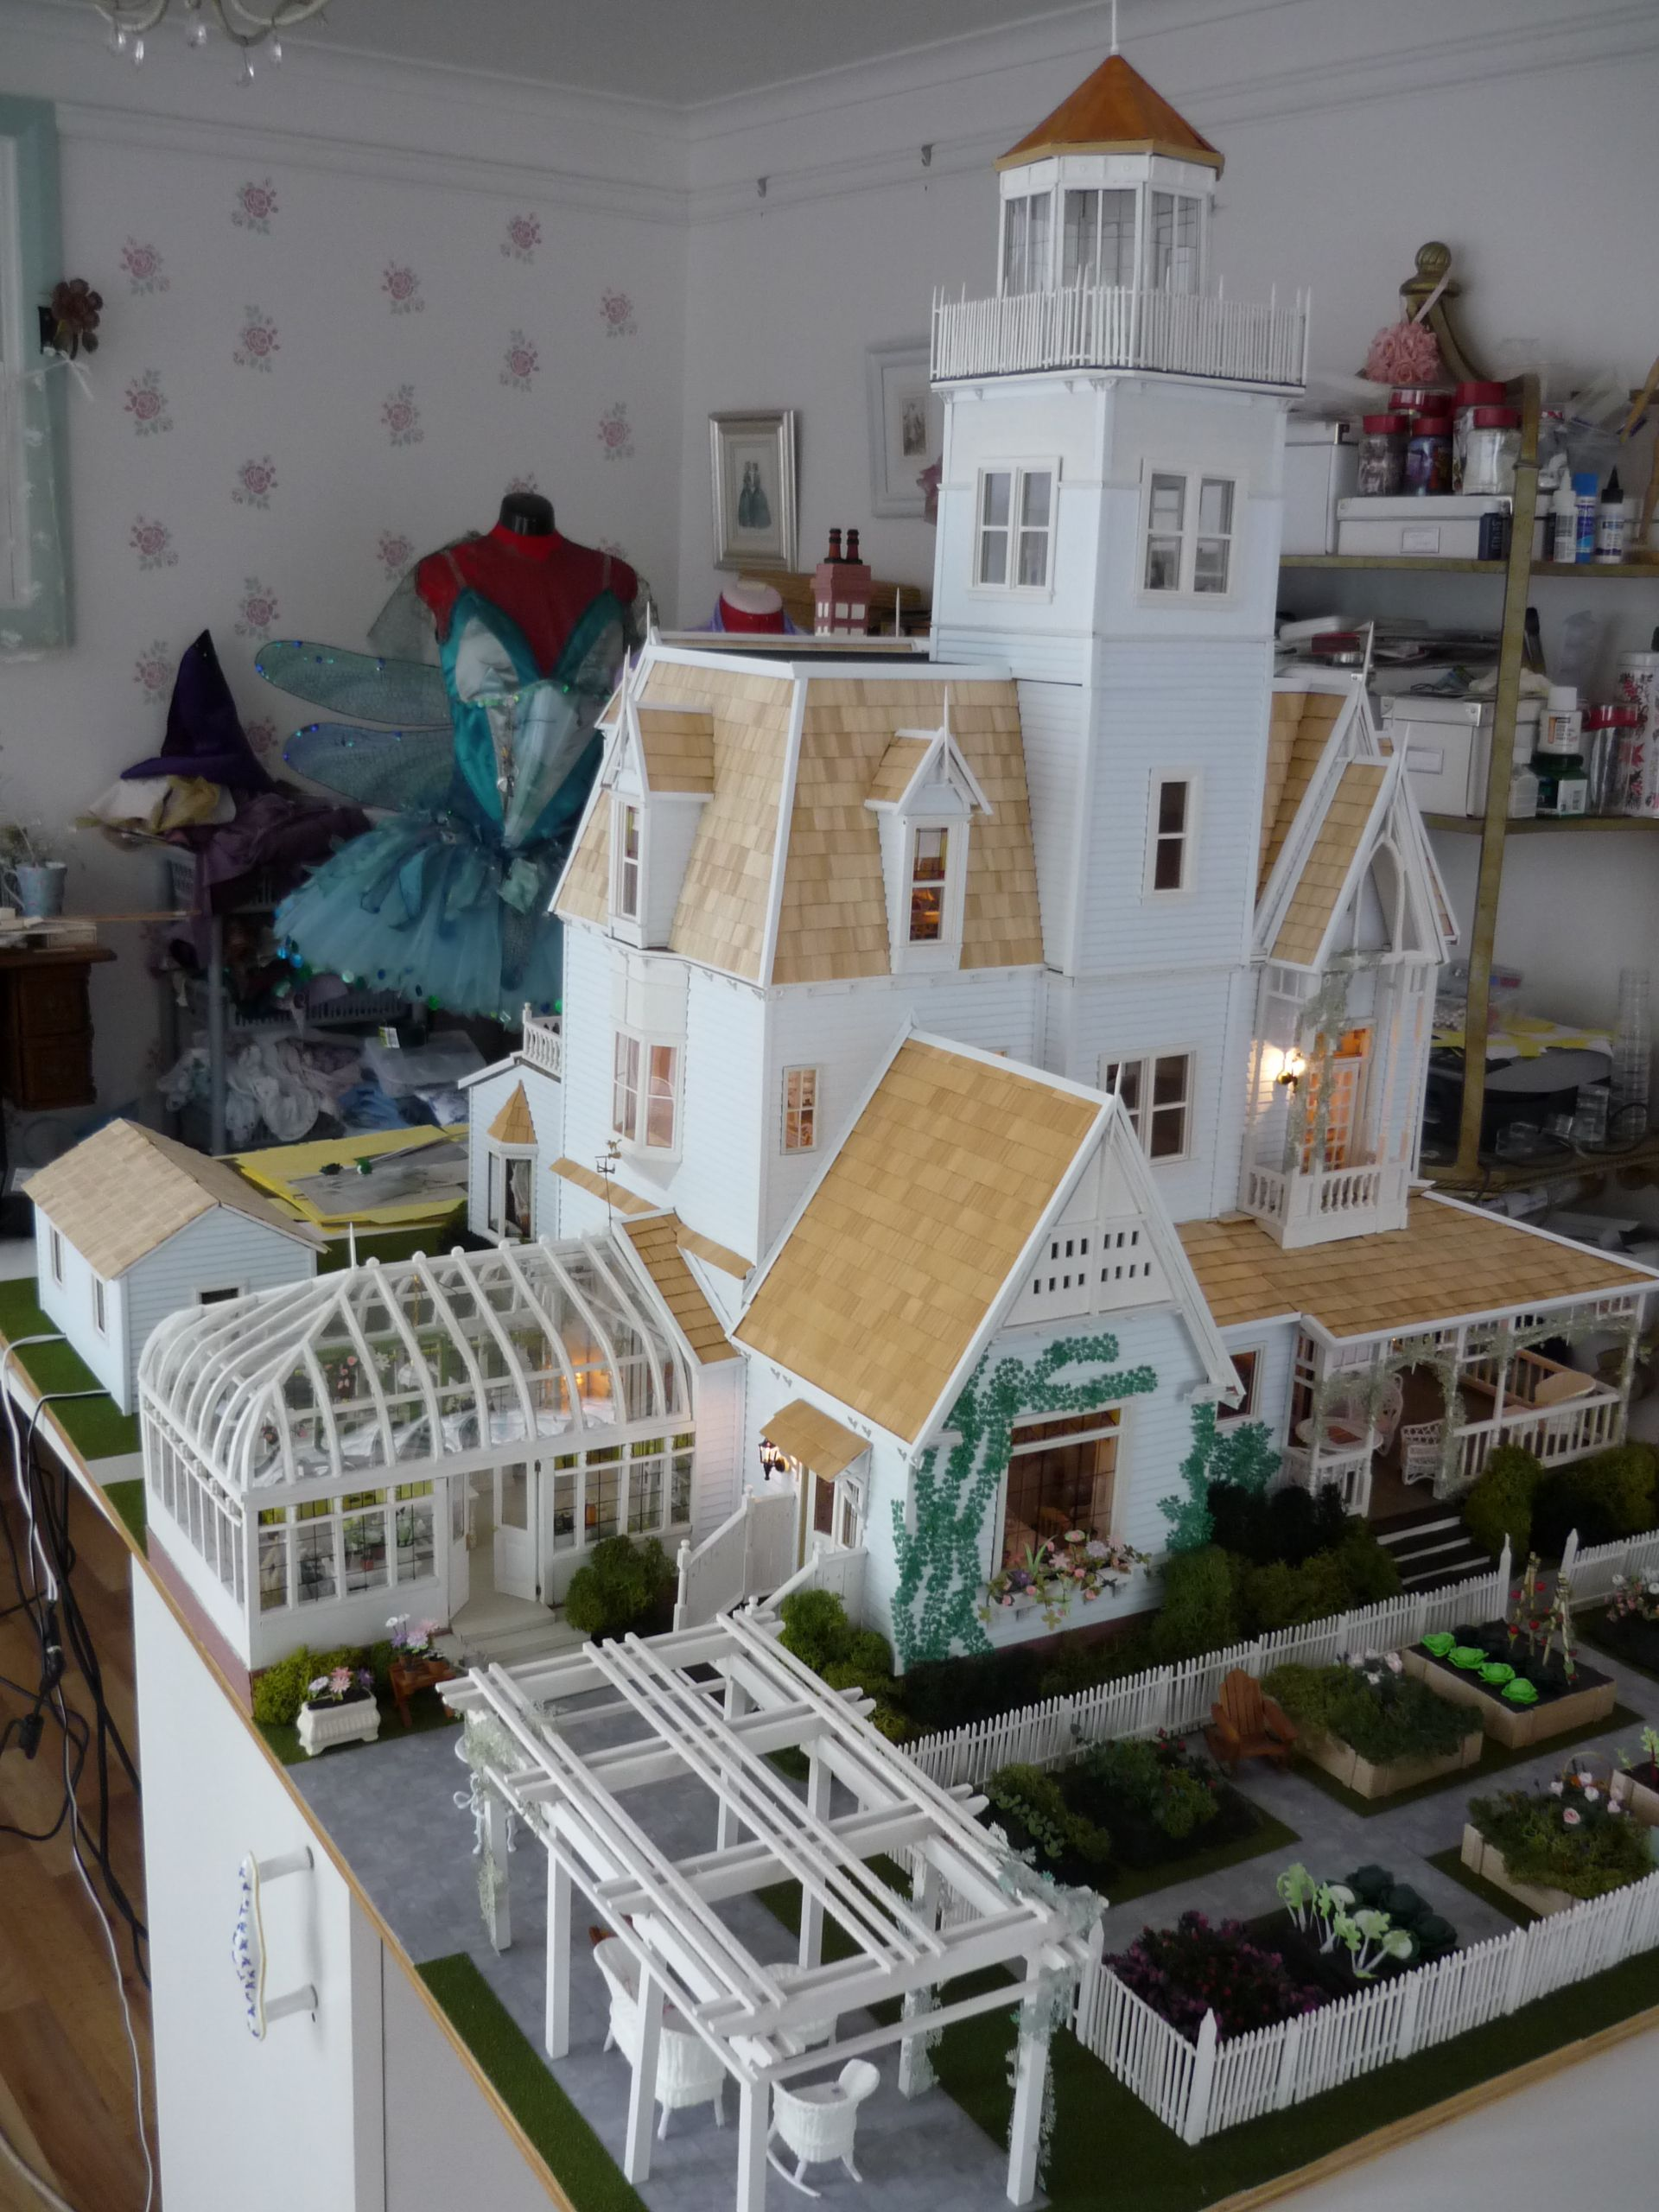 Your Model Home: Stunning Dollhouse Replica Of House From The Movie